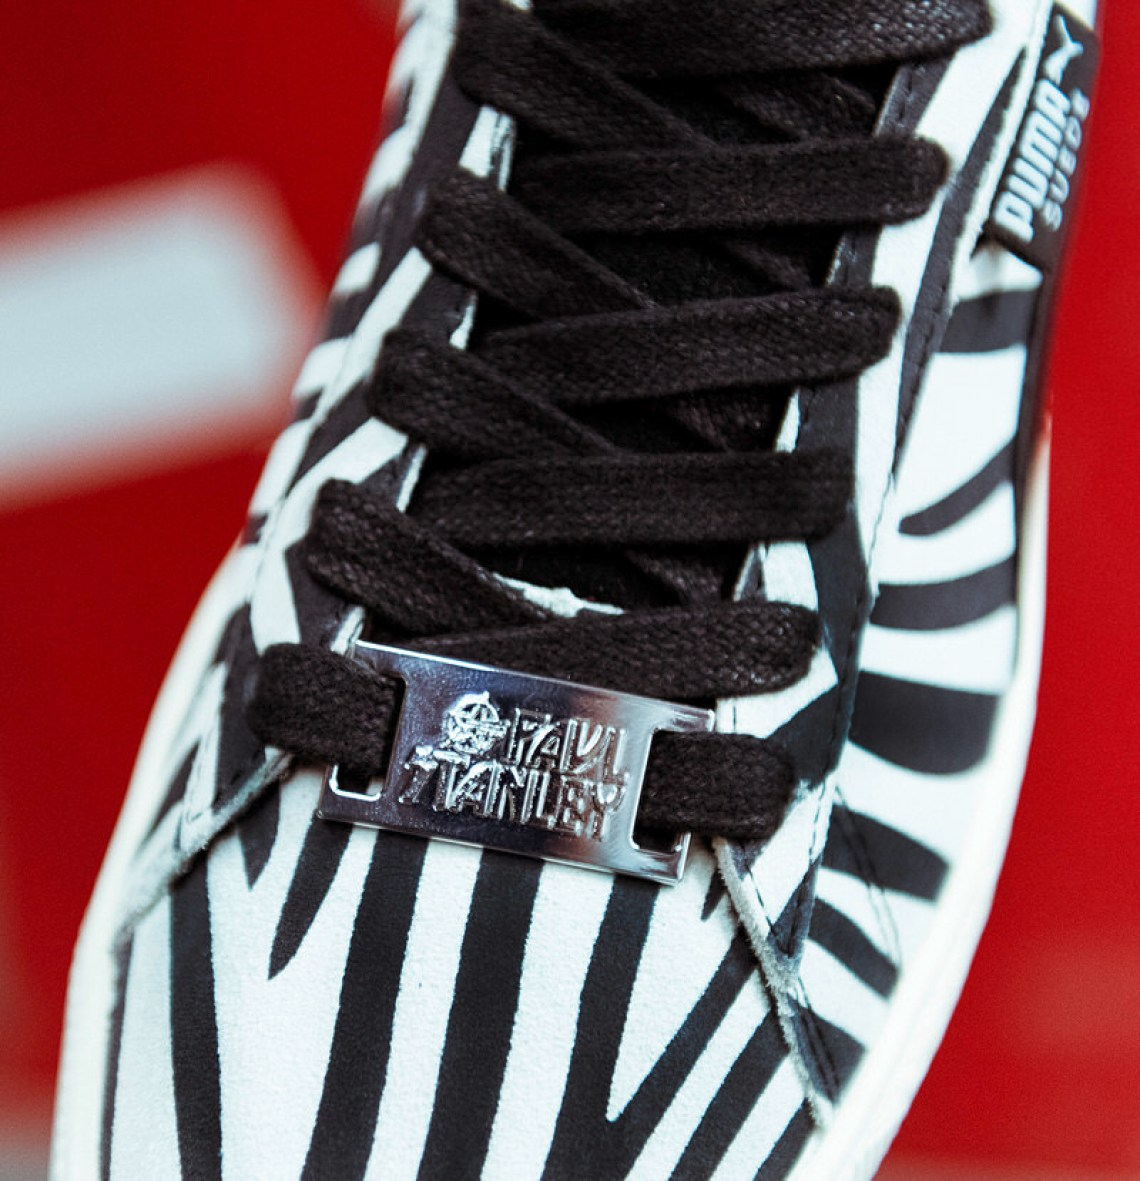 b1188bf49b03 The Paul Stanley x PUMA Suede 50 launches worldwide on September 27th.